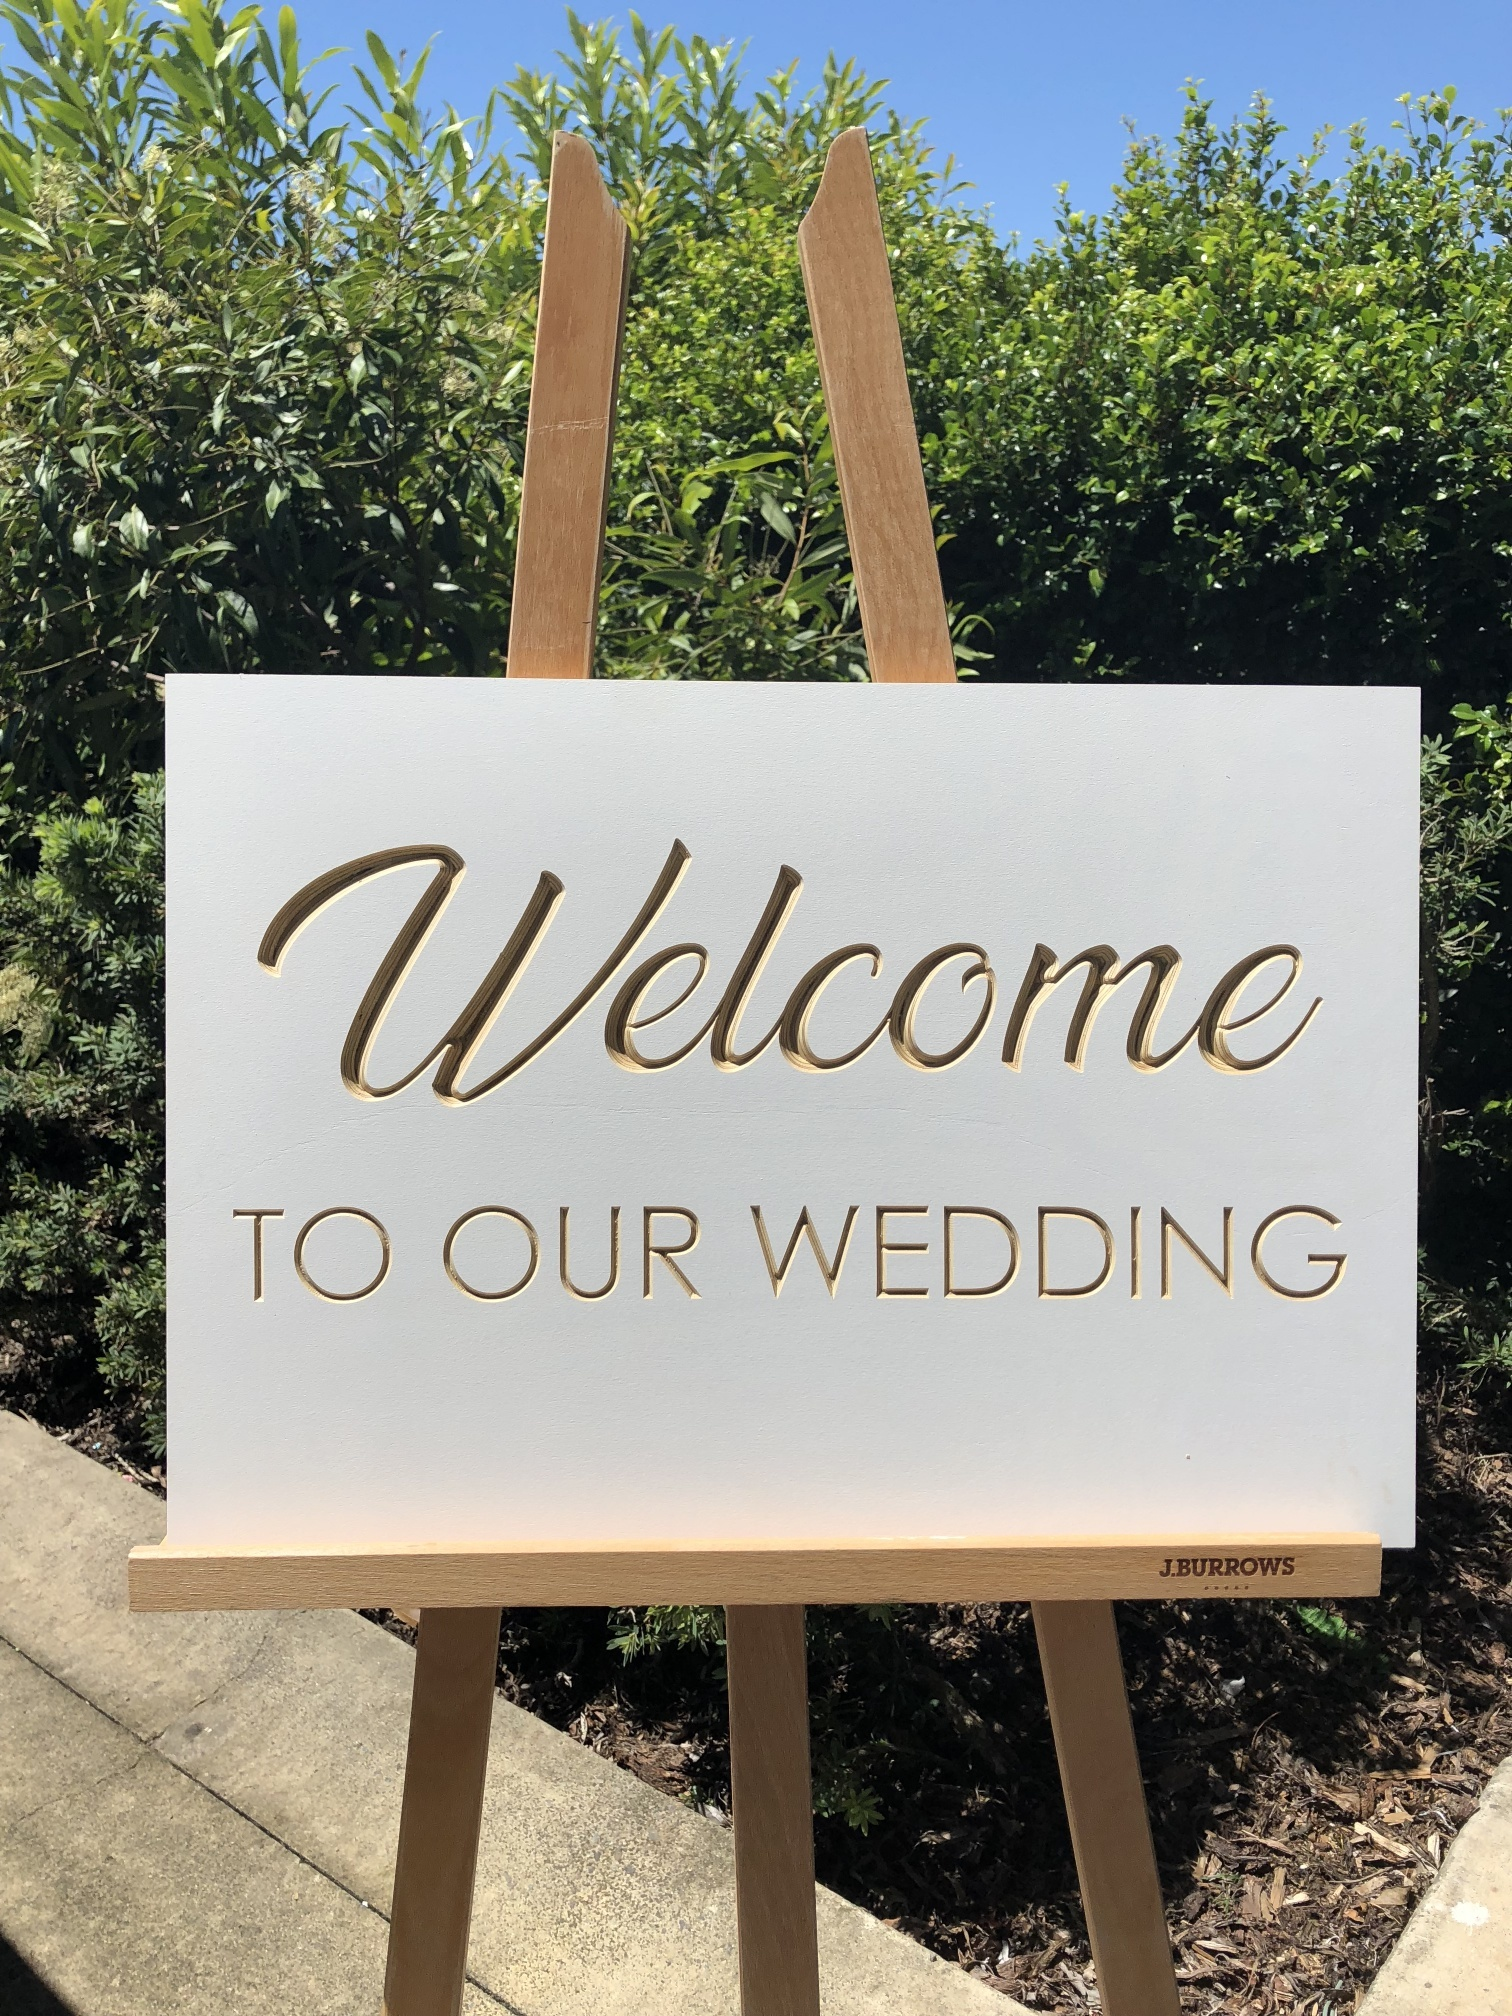 Welcome to our wedding sign - Splash Events, Noosa & Sunshine Coast